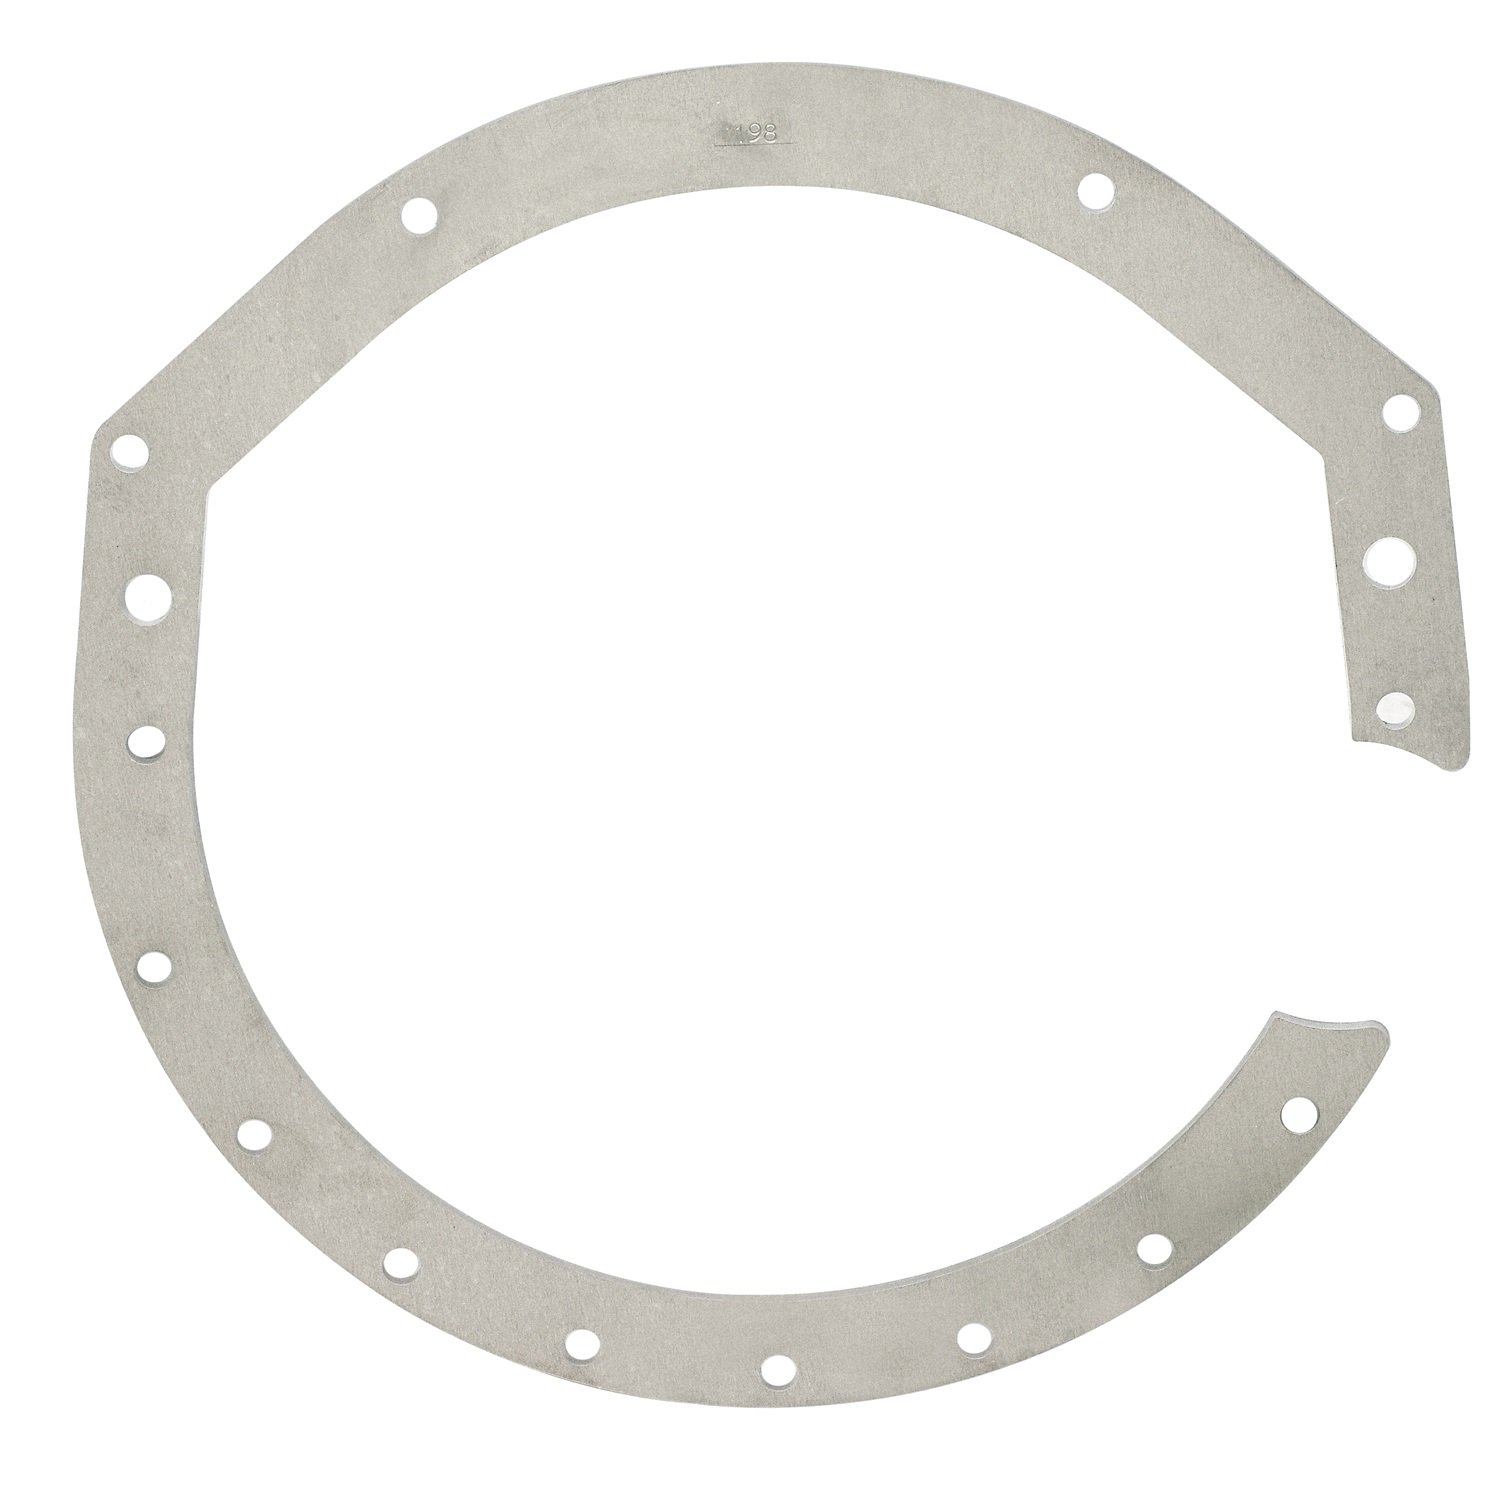 QuickTime (RM-198) 1/4'' Aluminum Engine Spacer for Chevy by Quick Time